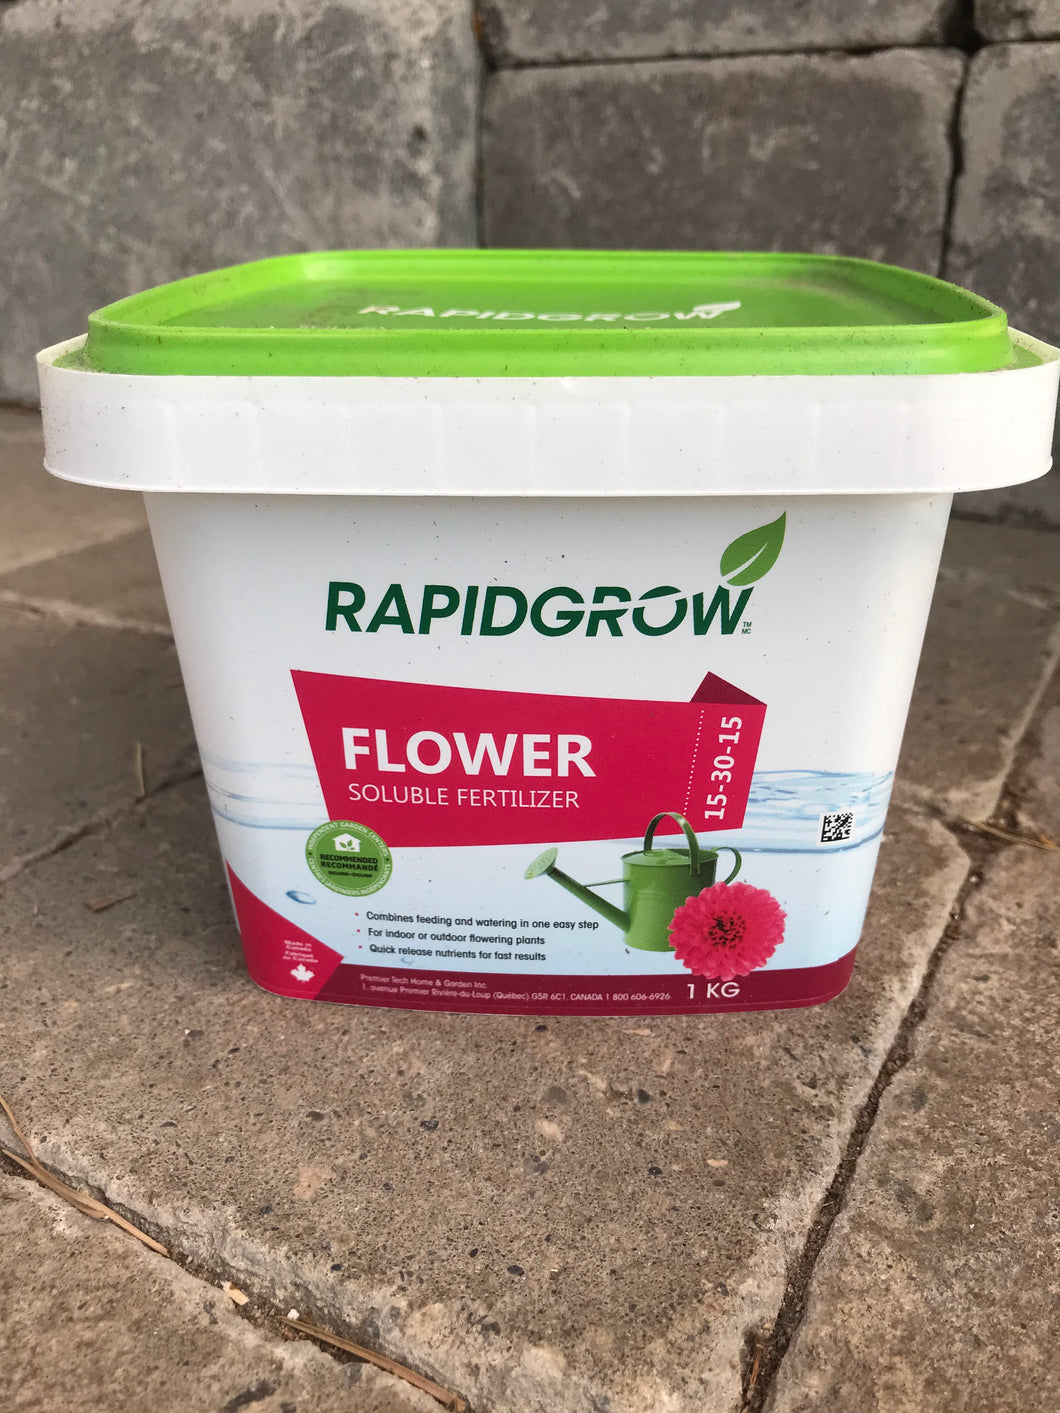 Fertilizer Rapid Grow Flower